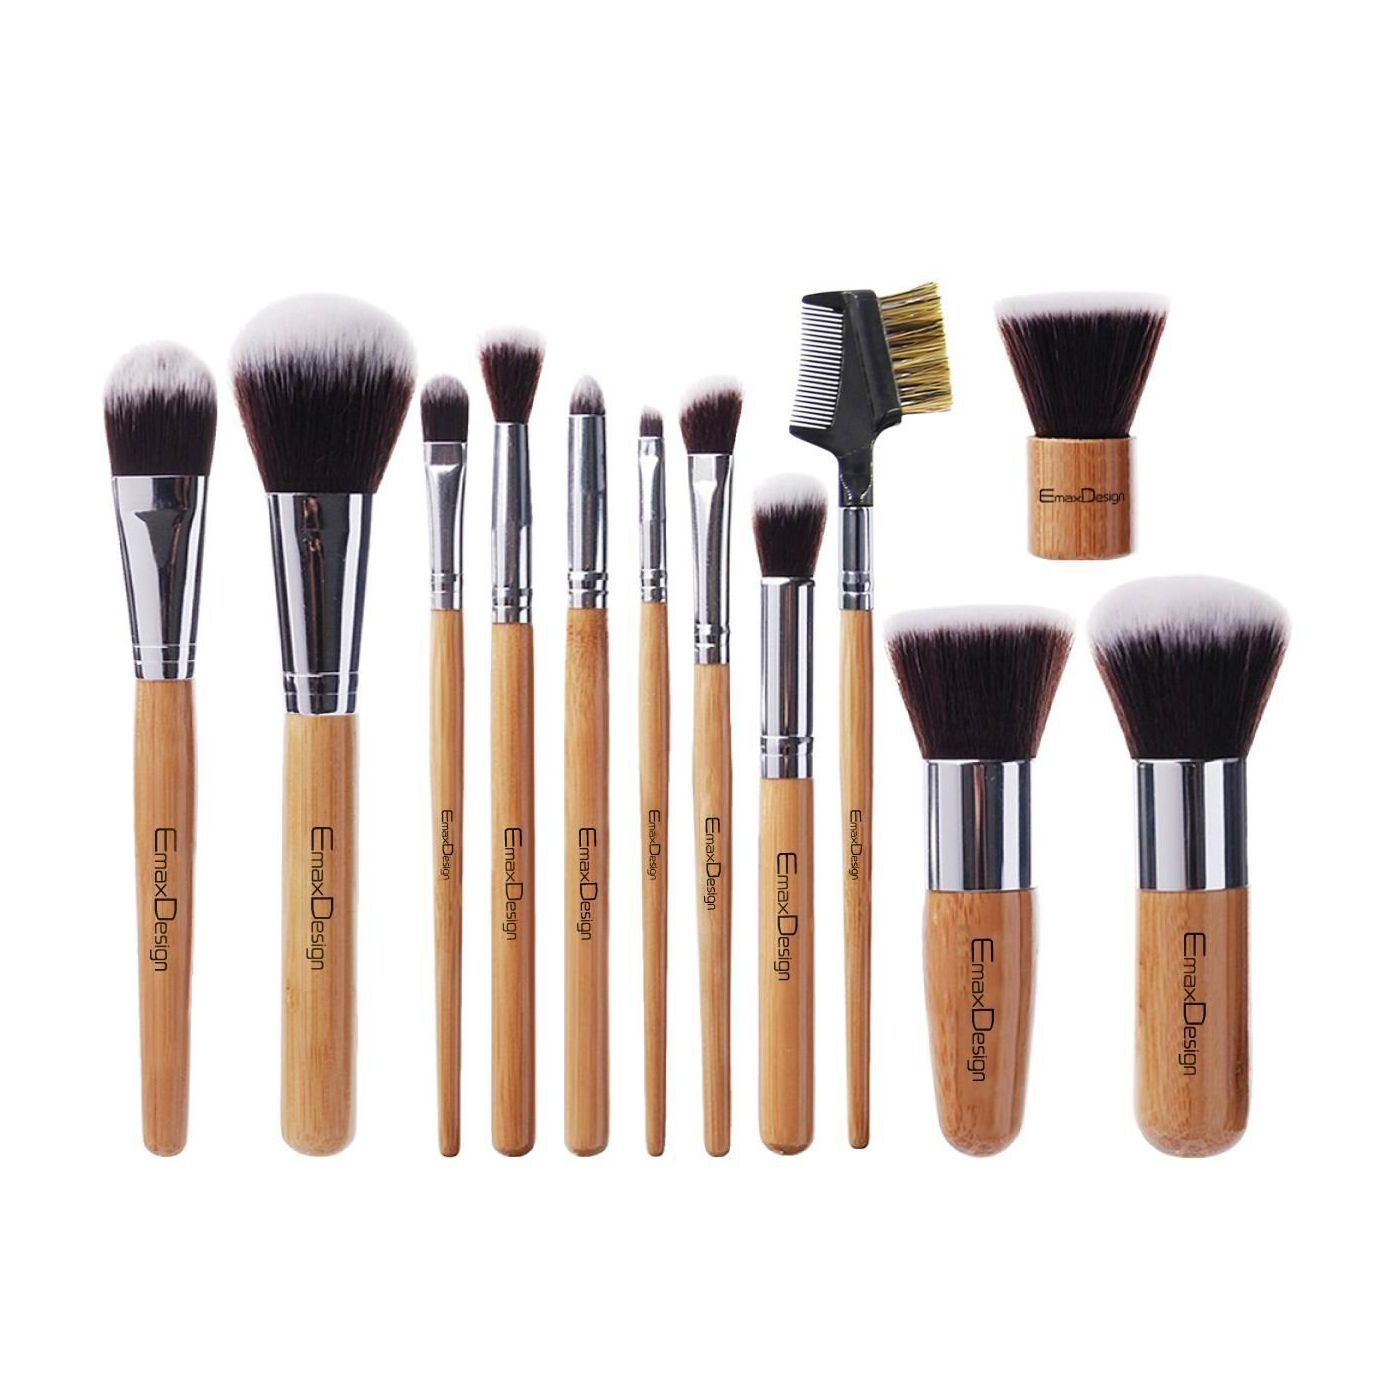 10 Best Makeup Brushes For Flawless